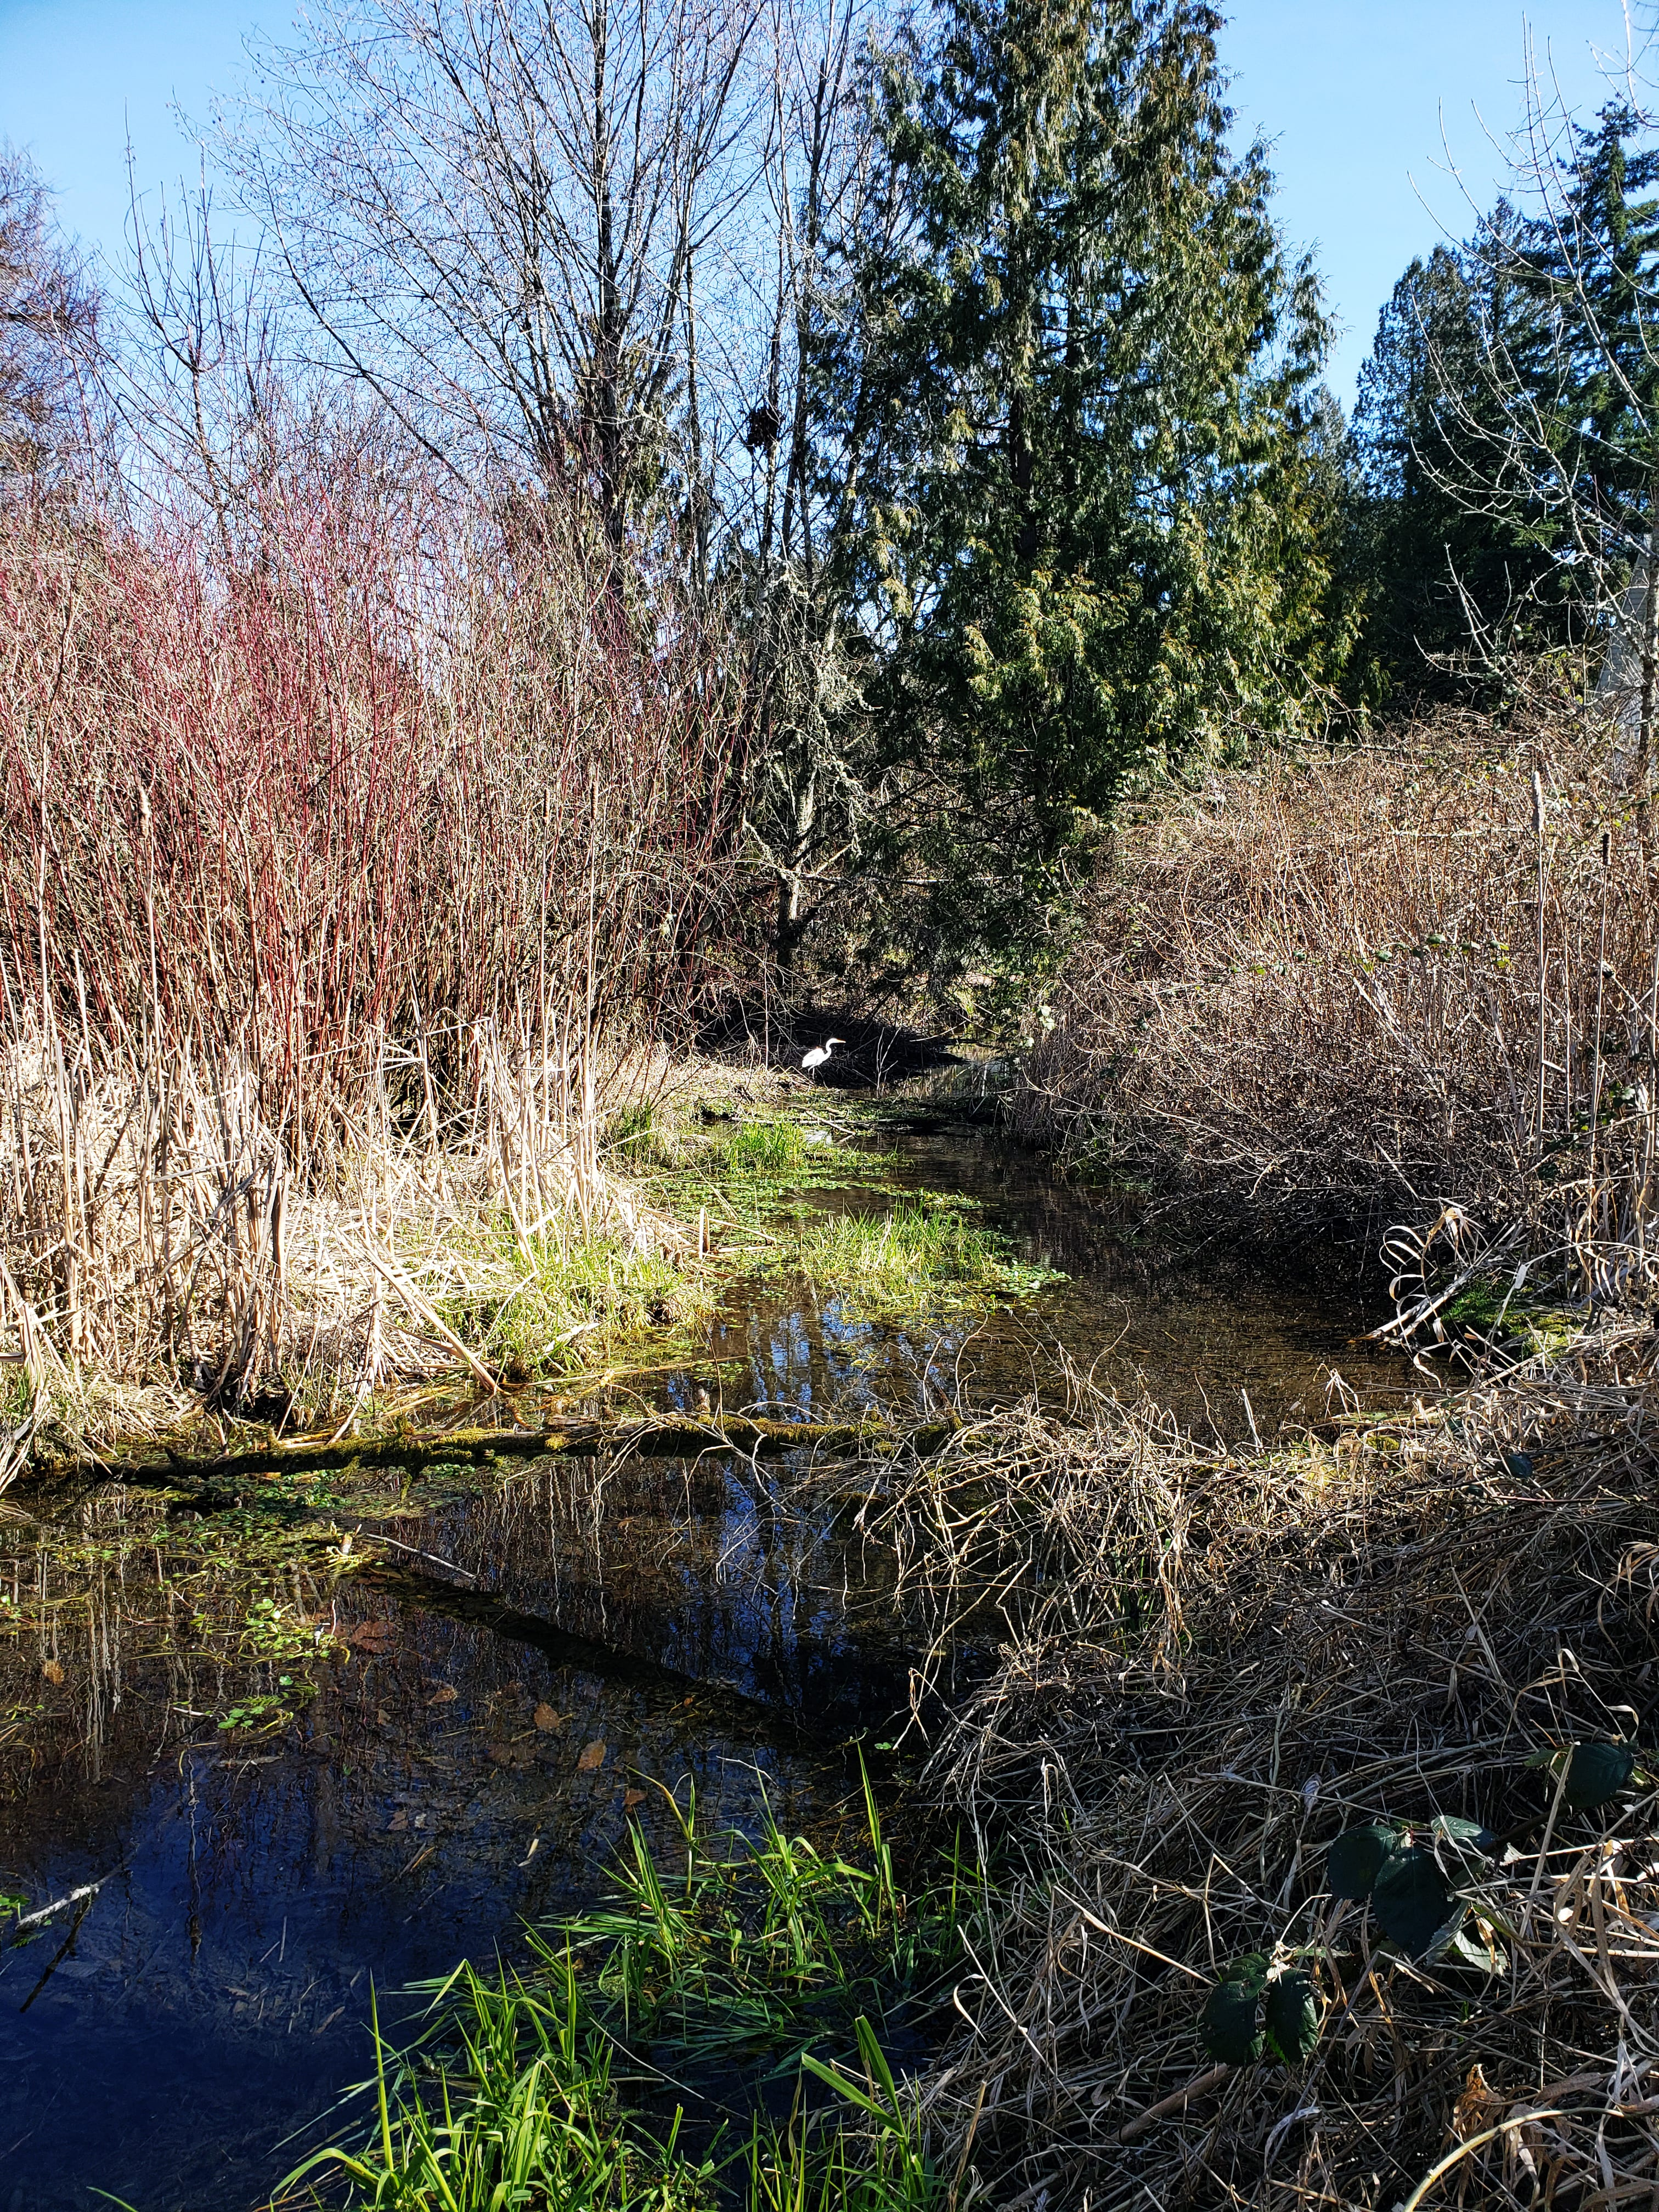 New wildlife finds home at Columbia Springs